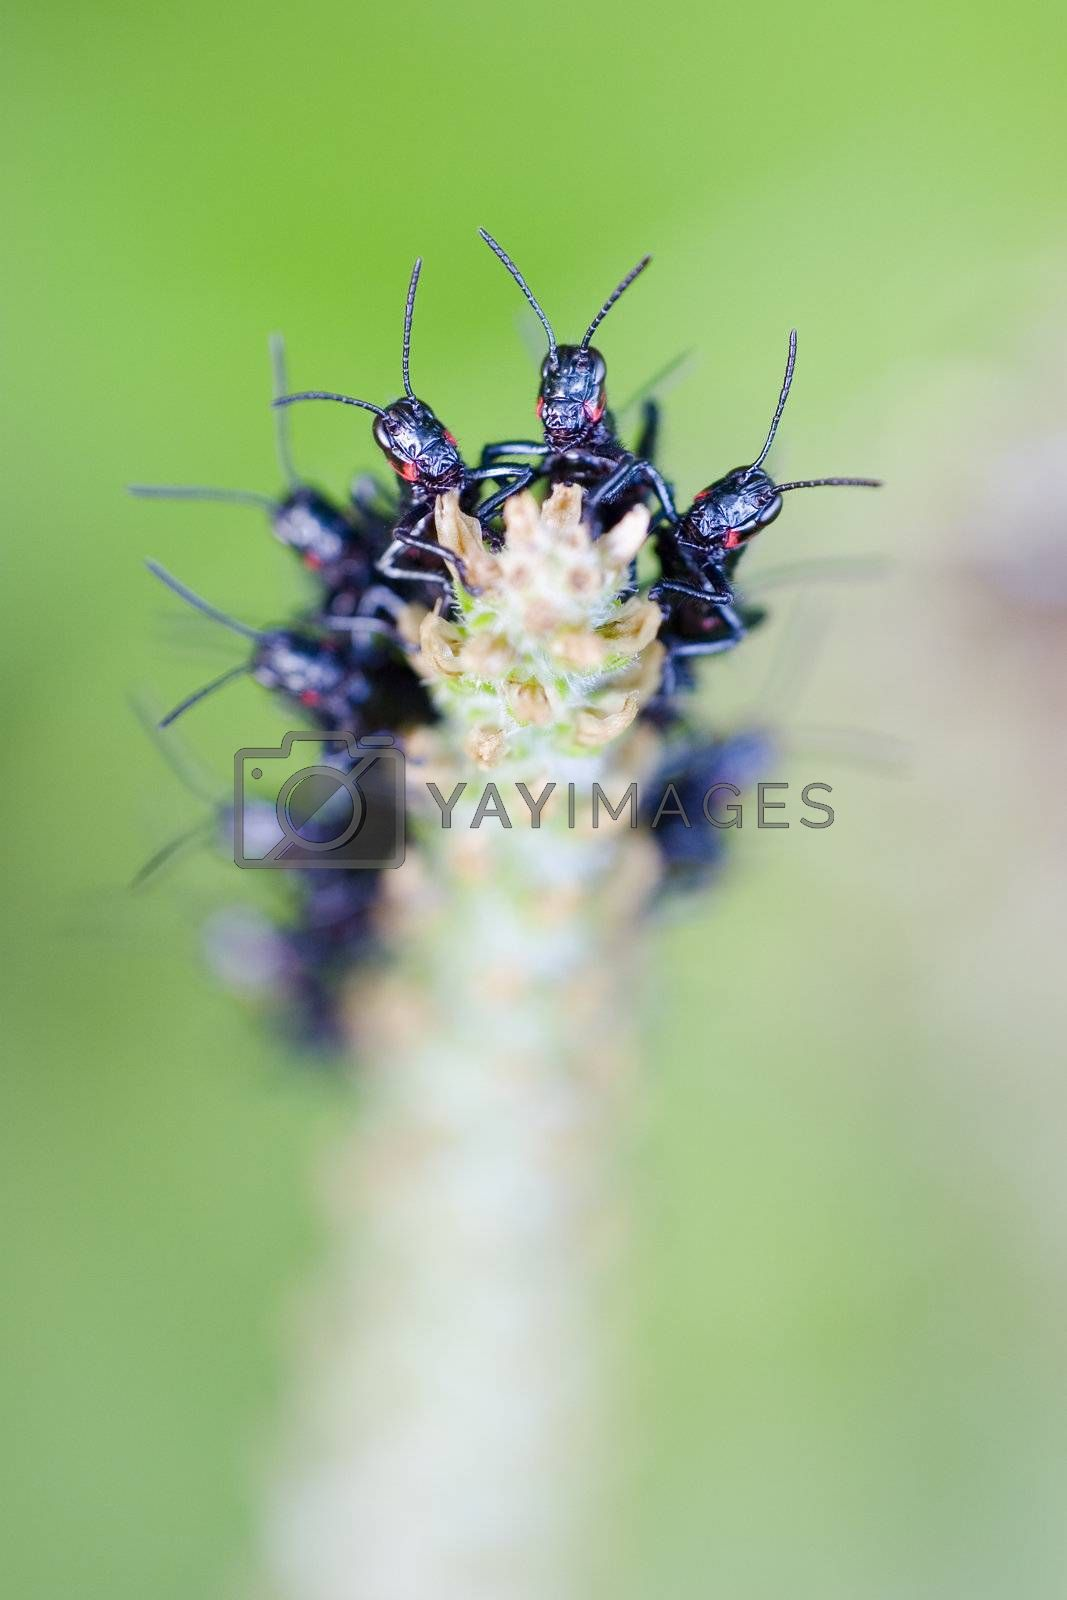 Formation of black crickets on a plant in southern brazil